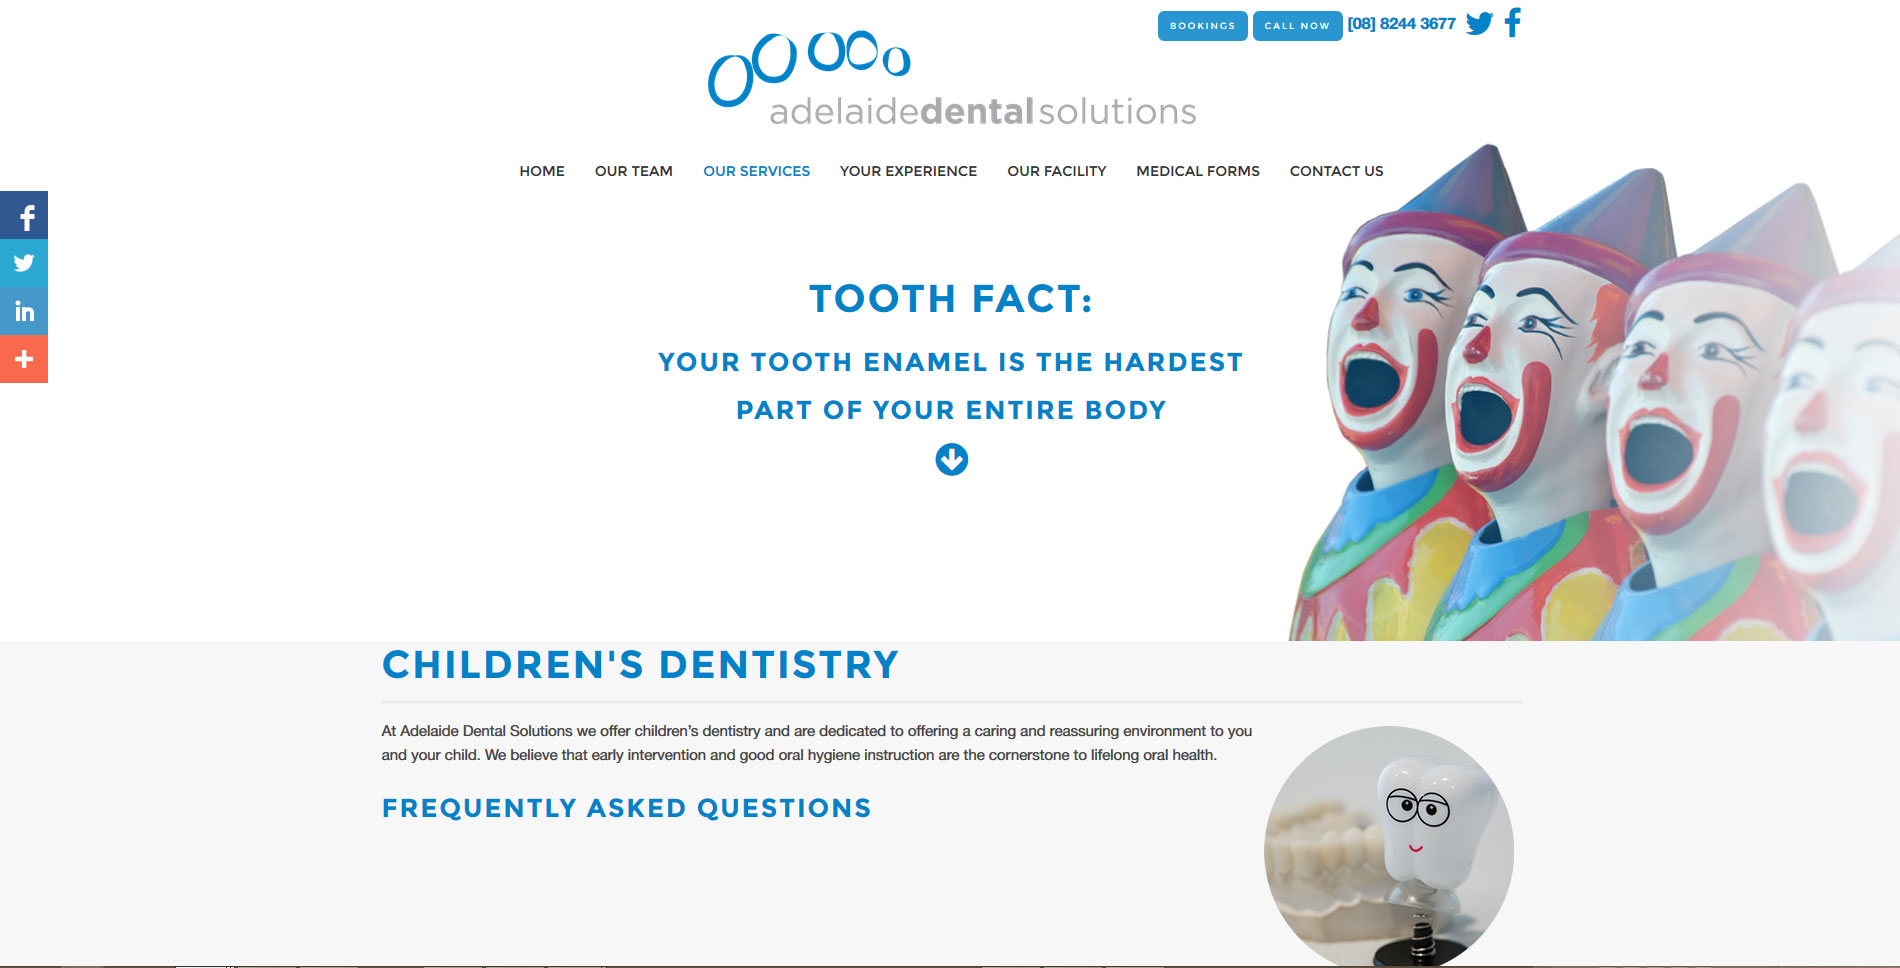 adelaide dental solutions full3